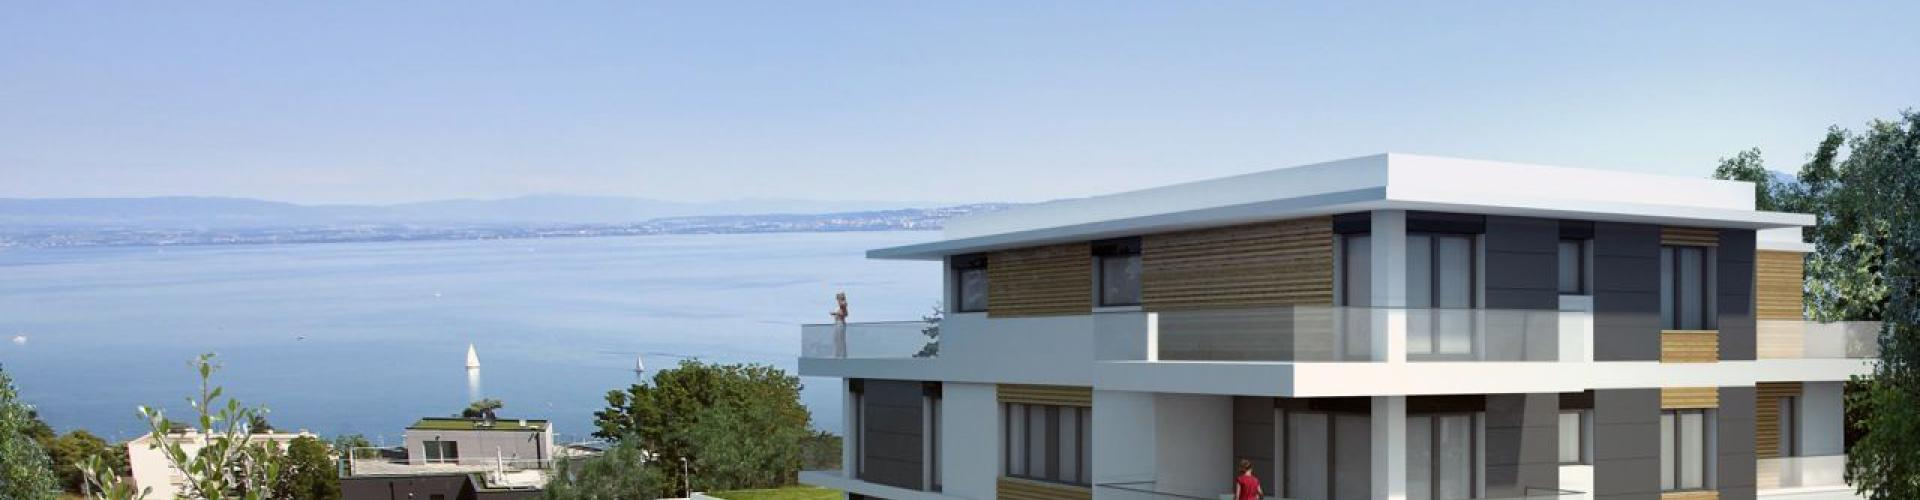 Appartements maison programme neuf evian sotheby 39 s for Achat maison evian